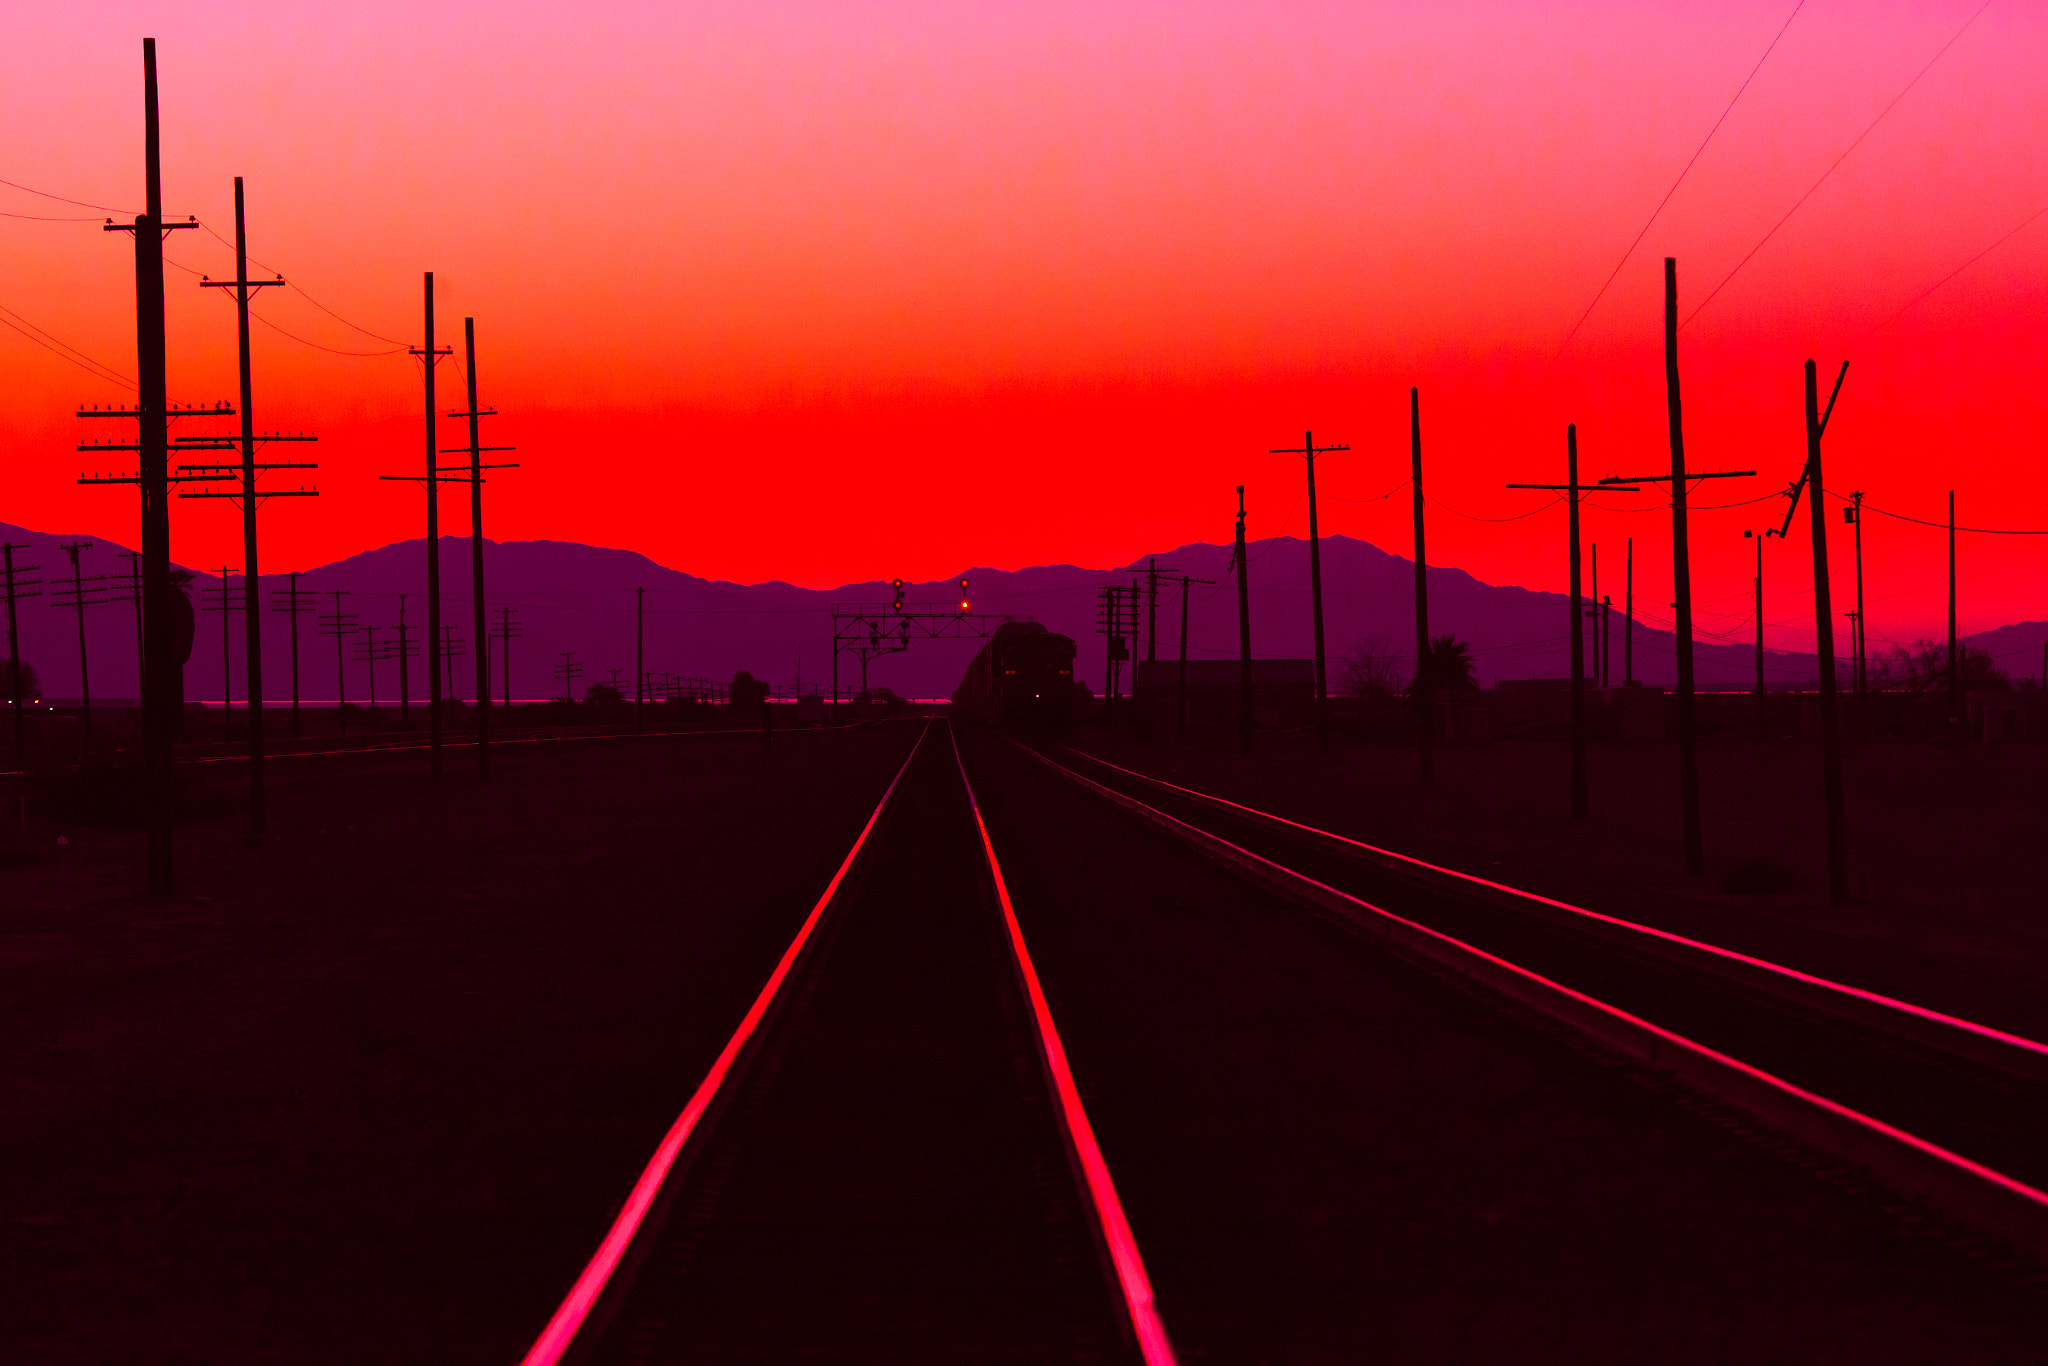 Photograph Last Train of the Day by Thomas Hawk on 500px